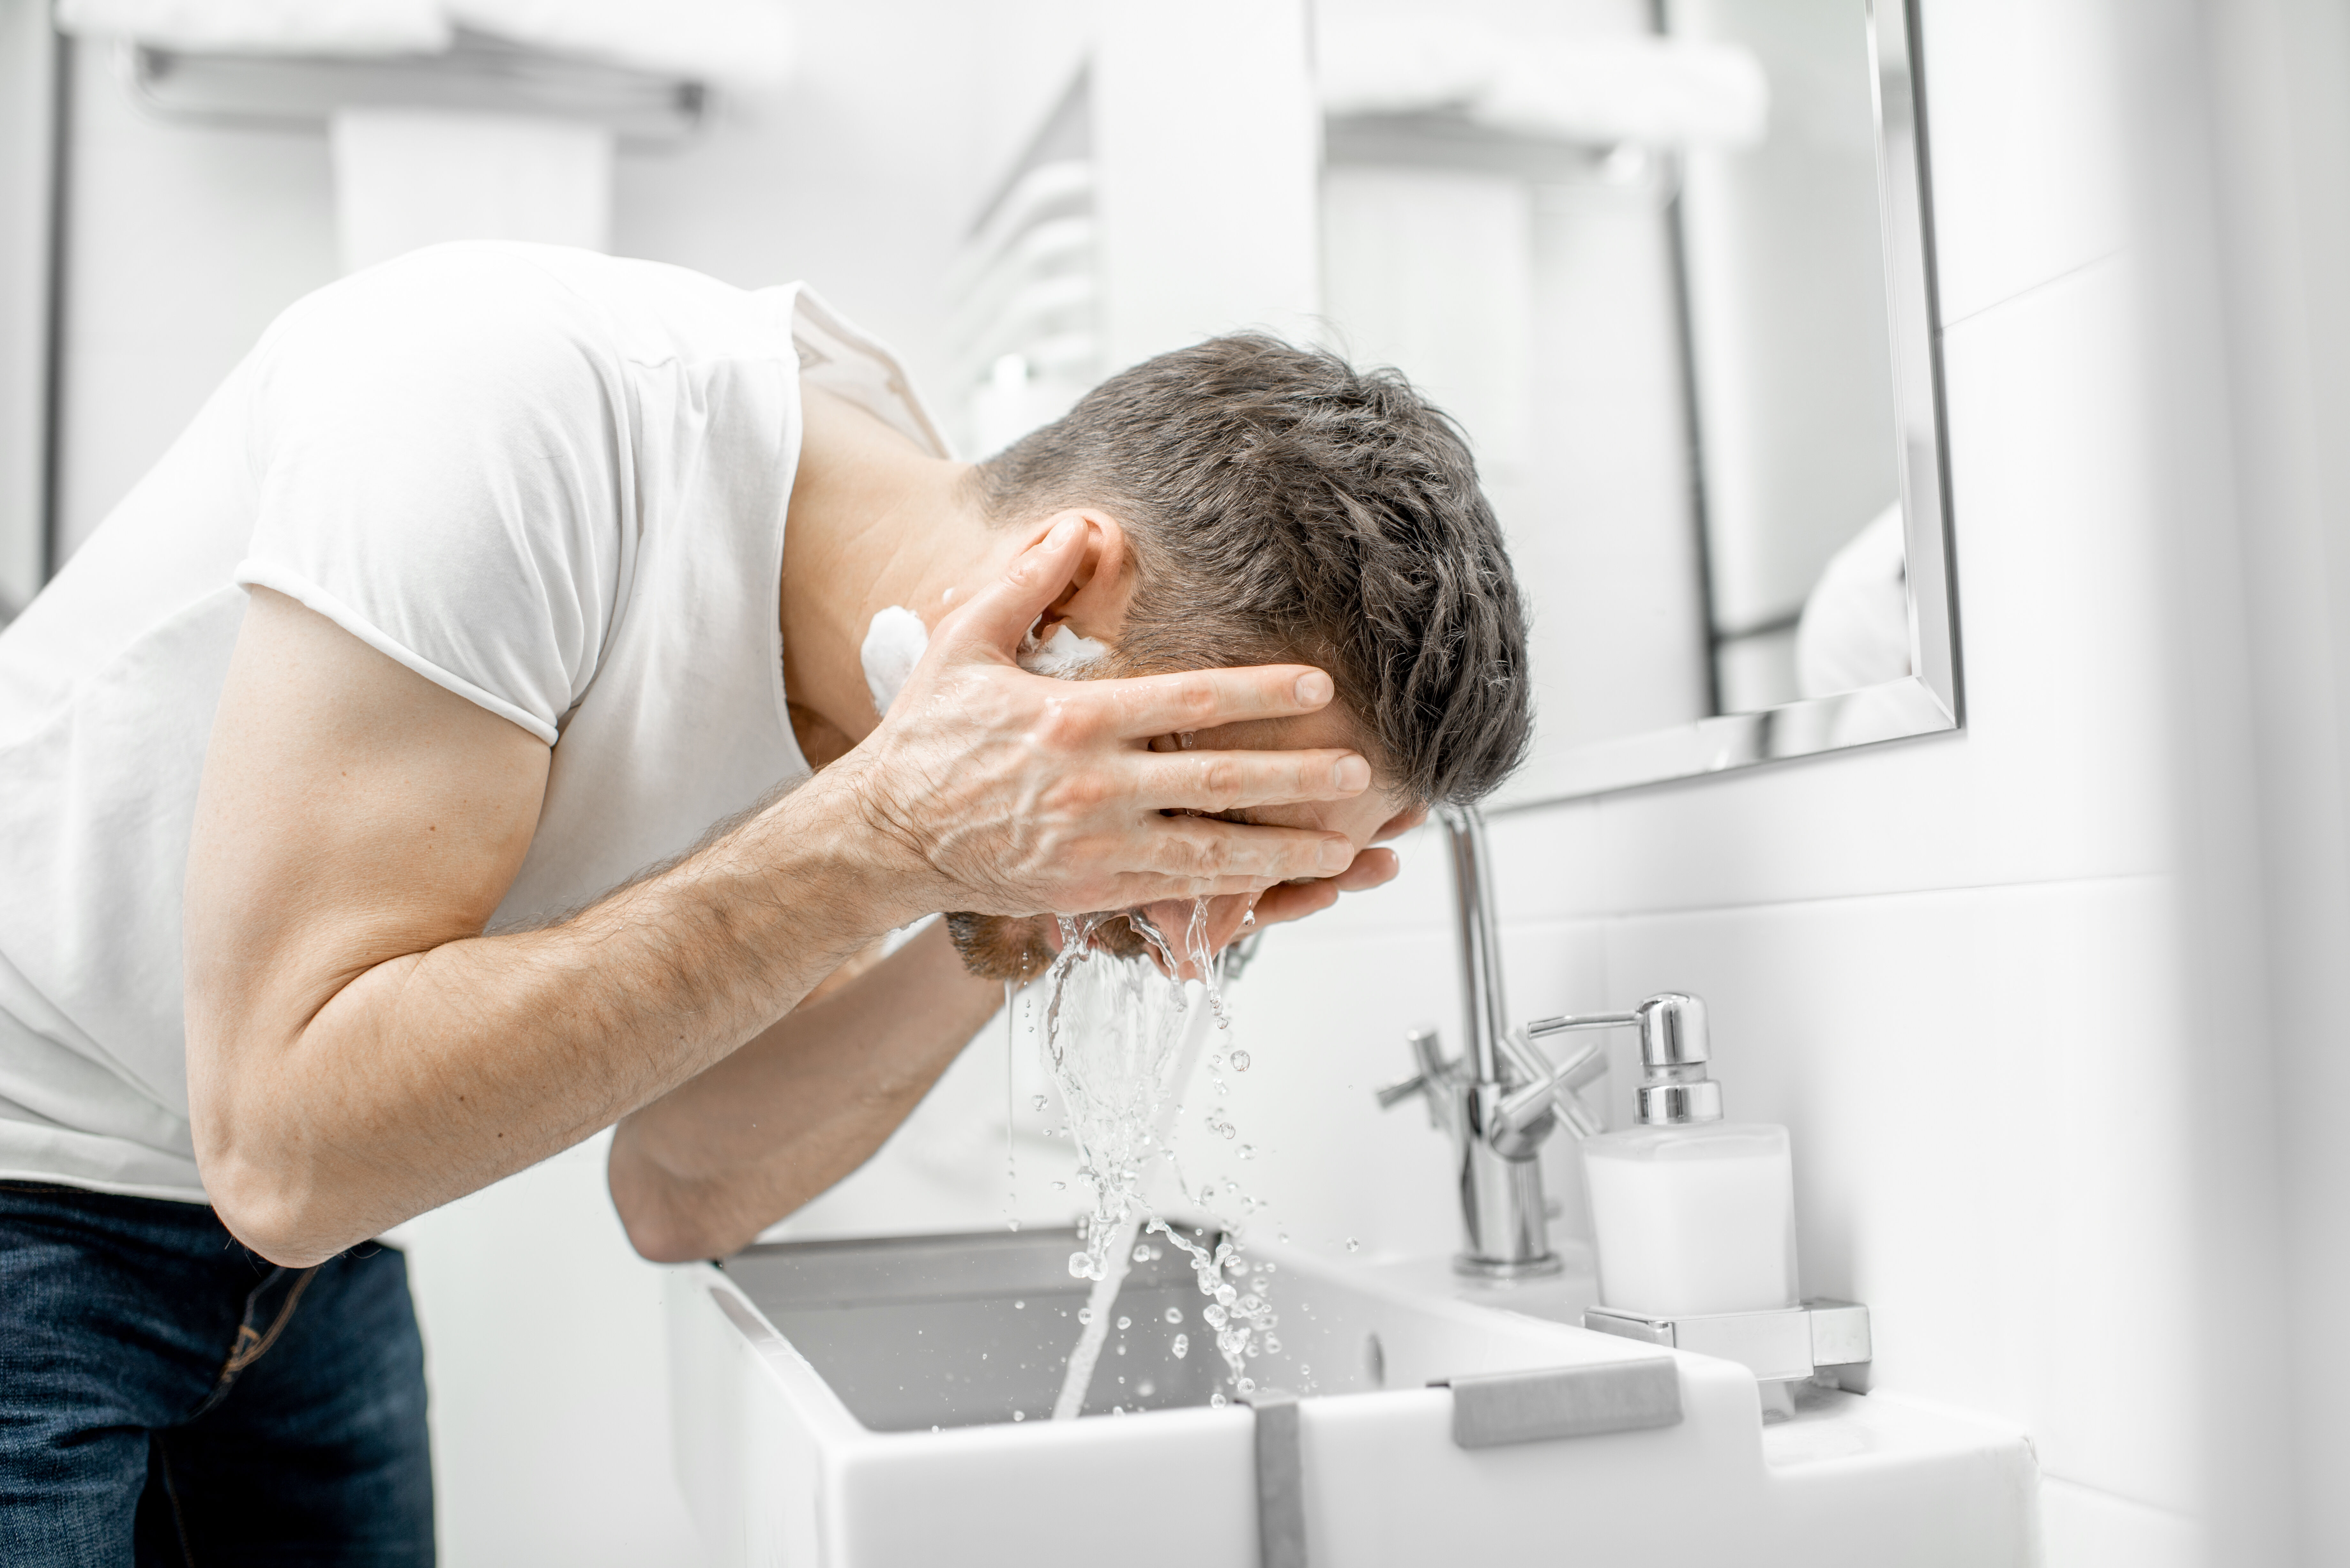 The man is washing his face